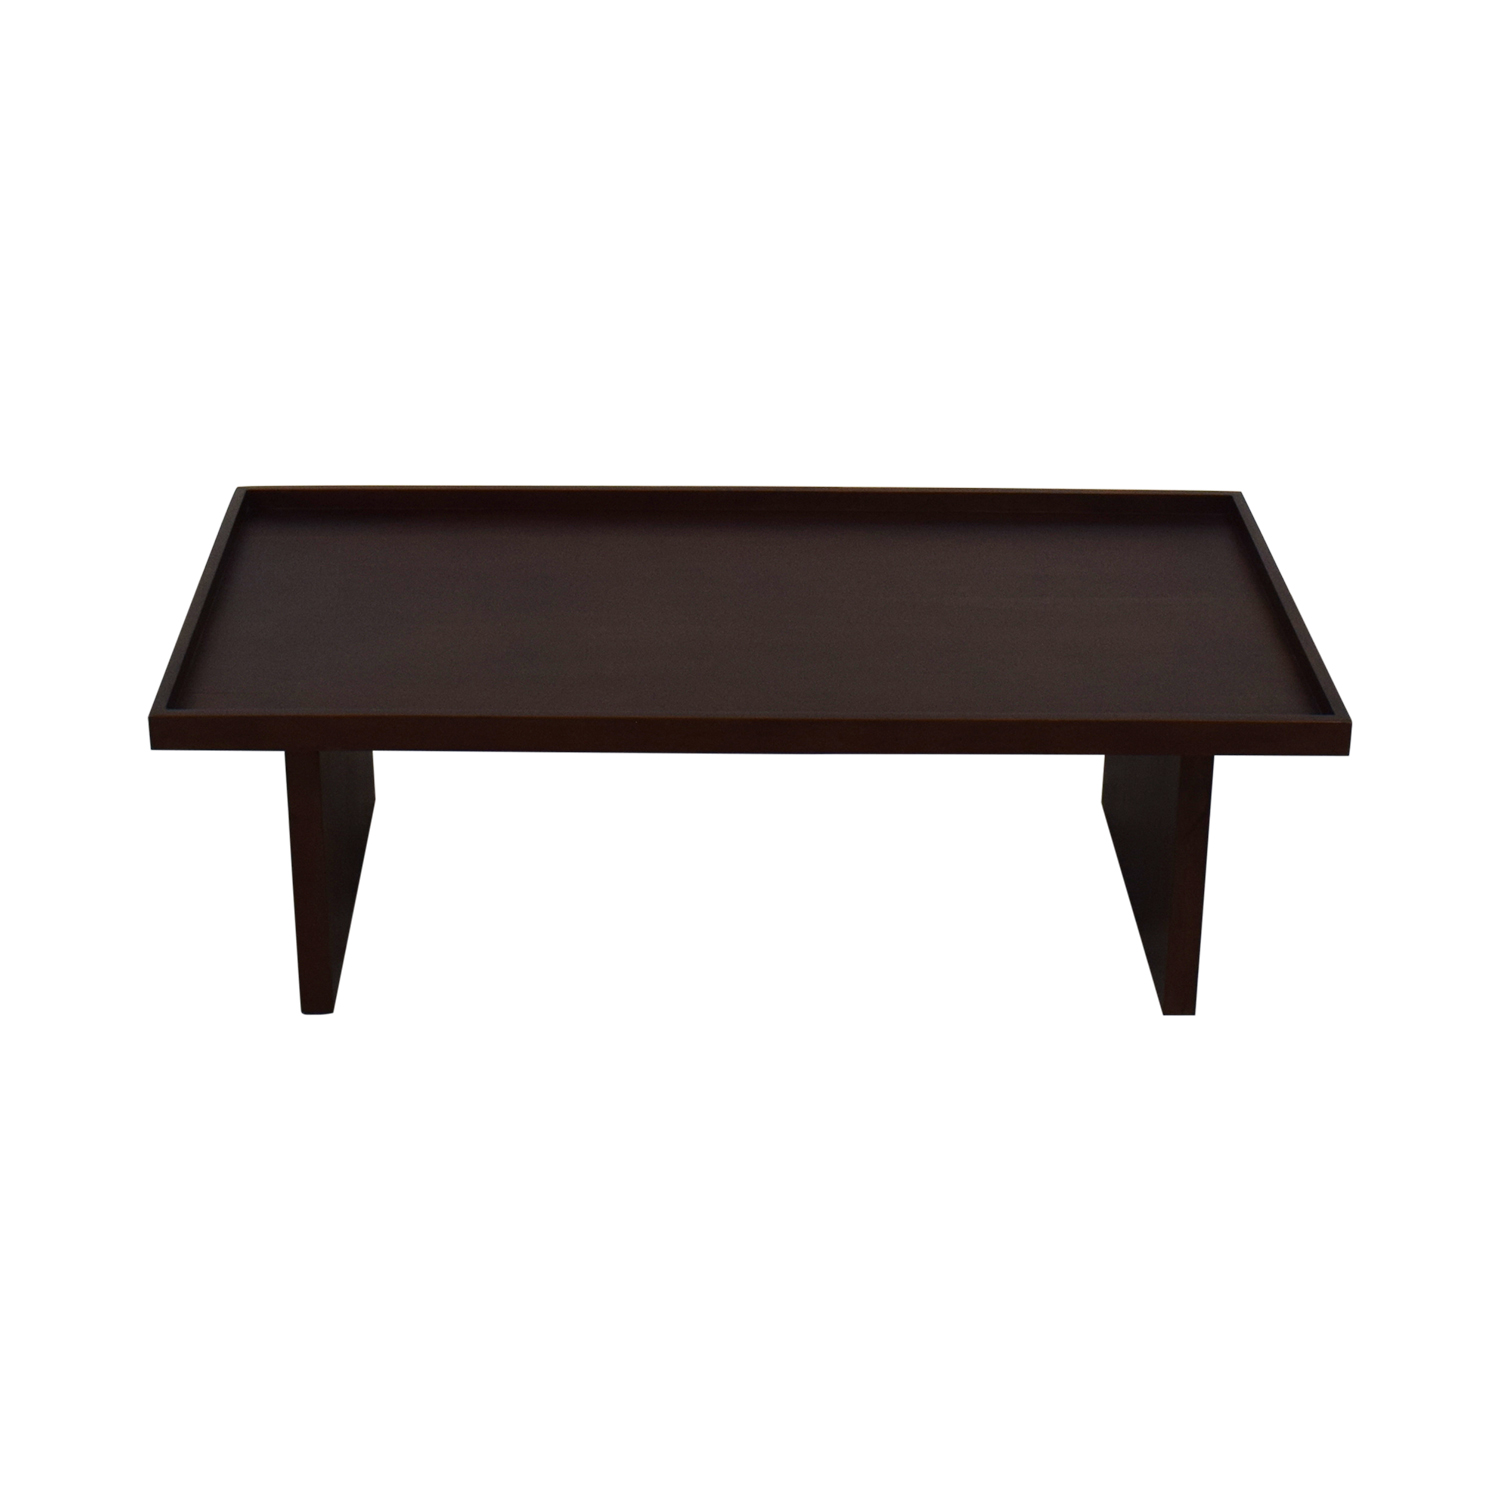 buy CB2 by Ross Cassidy Bento Coffee Table CB2